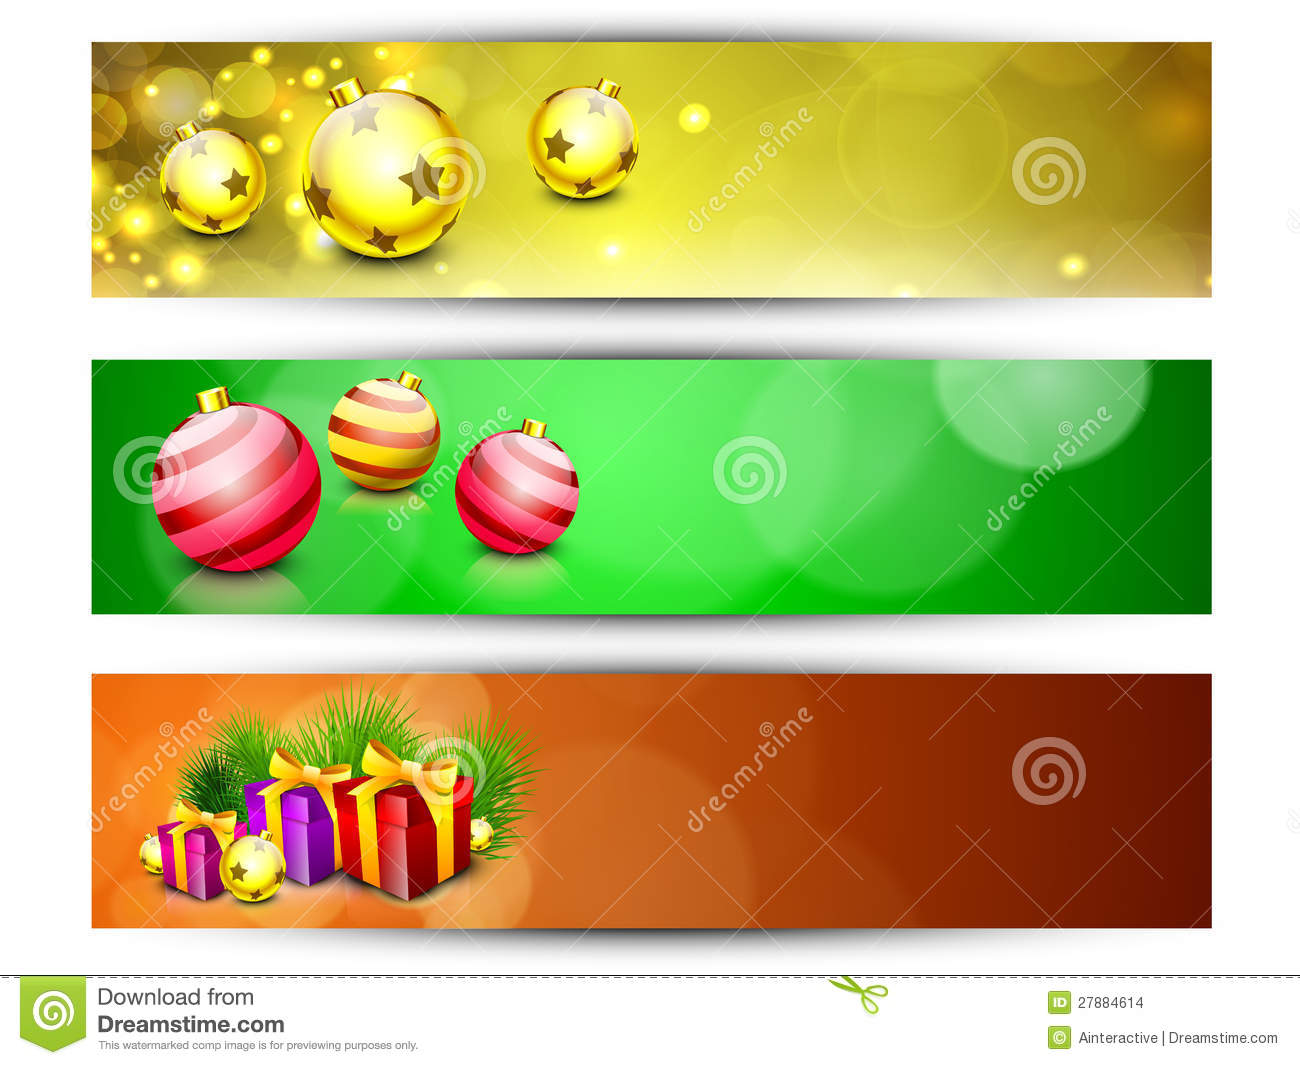 website headers or banners for happy new year